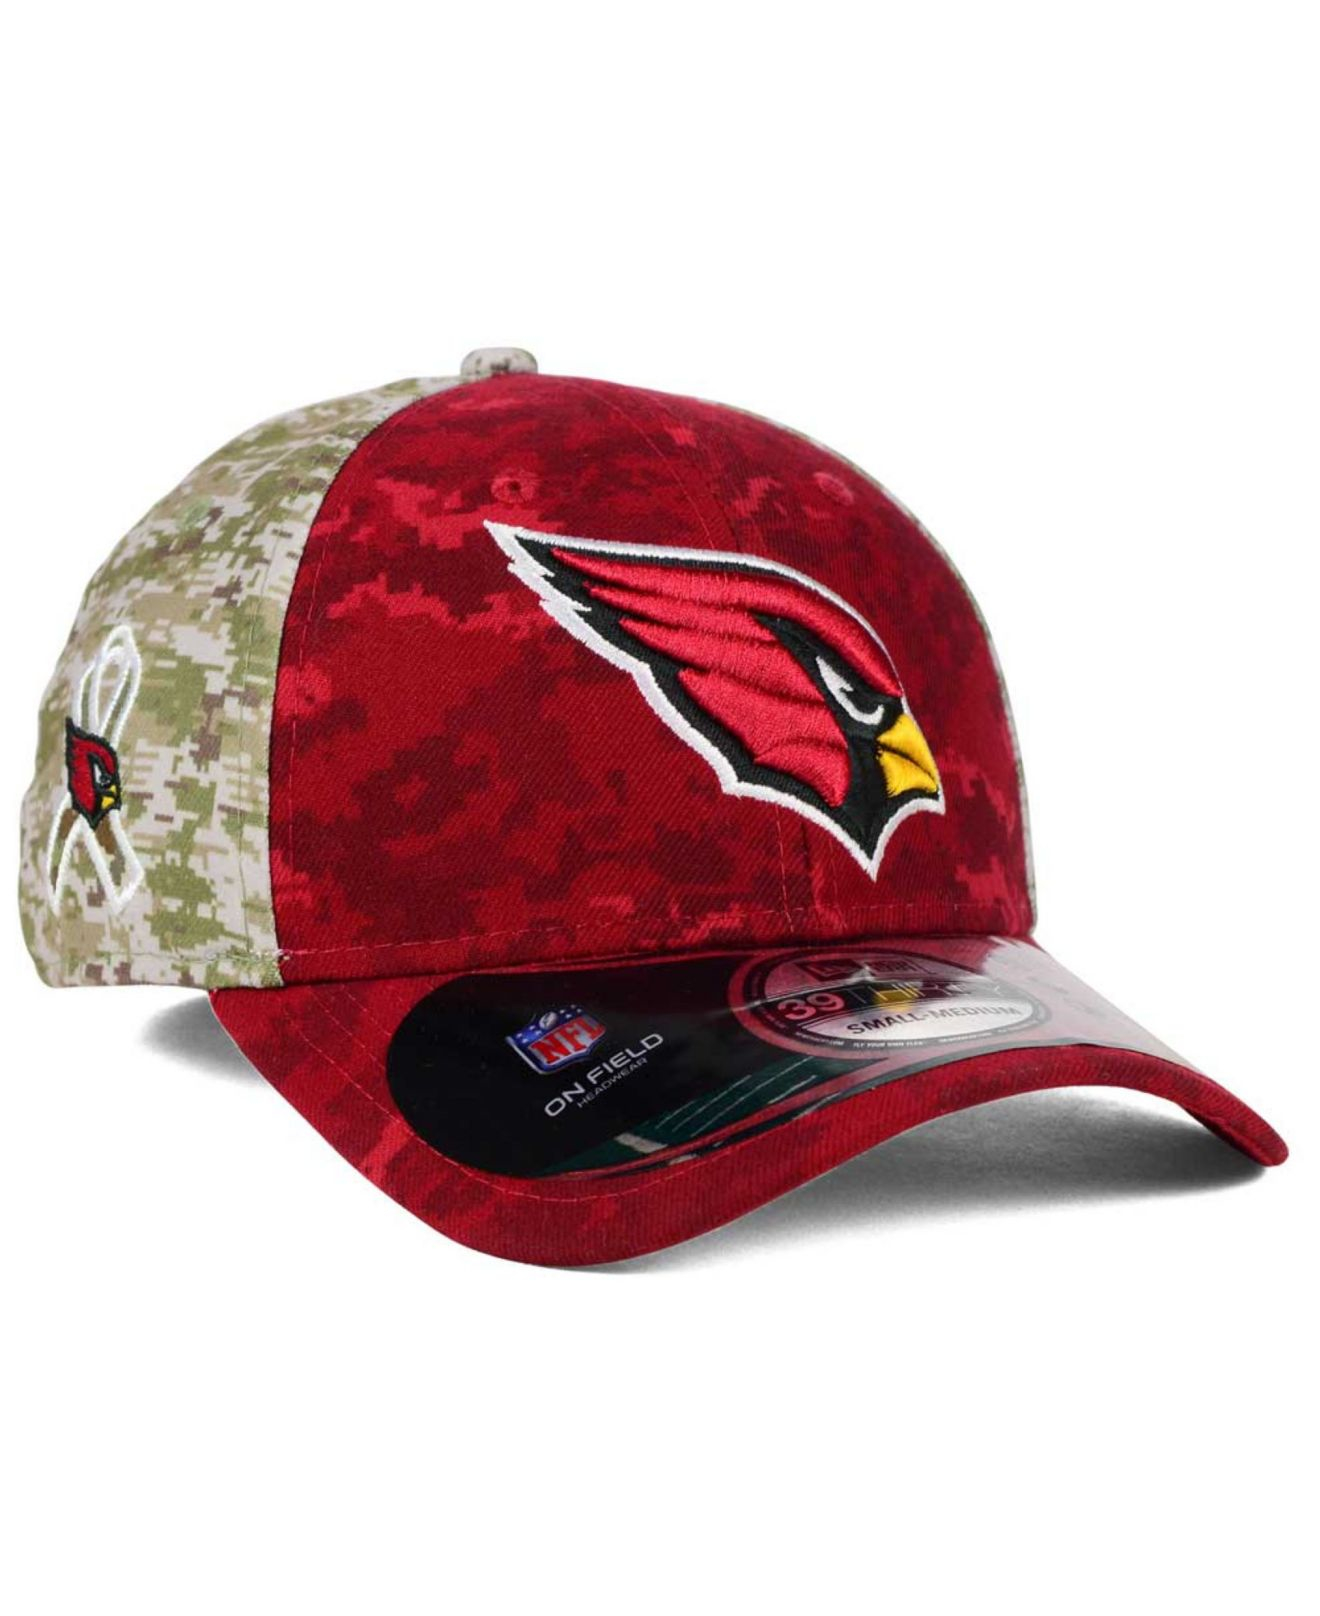 563aa3cb276 ... new era nfl 39thirty 2017 sideline quotsalute to servicequot hat 7c6e8  ddb34  coupon for lyst ktz arizona cardinals salute to service 39thirty cap  in ...